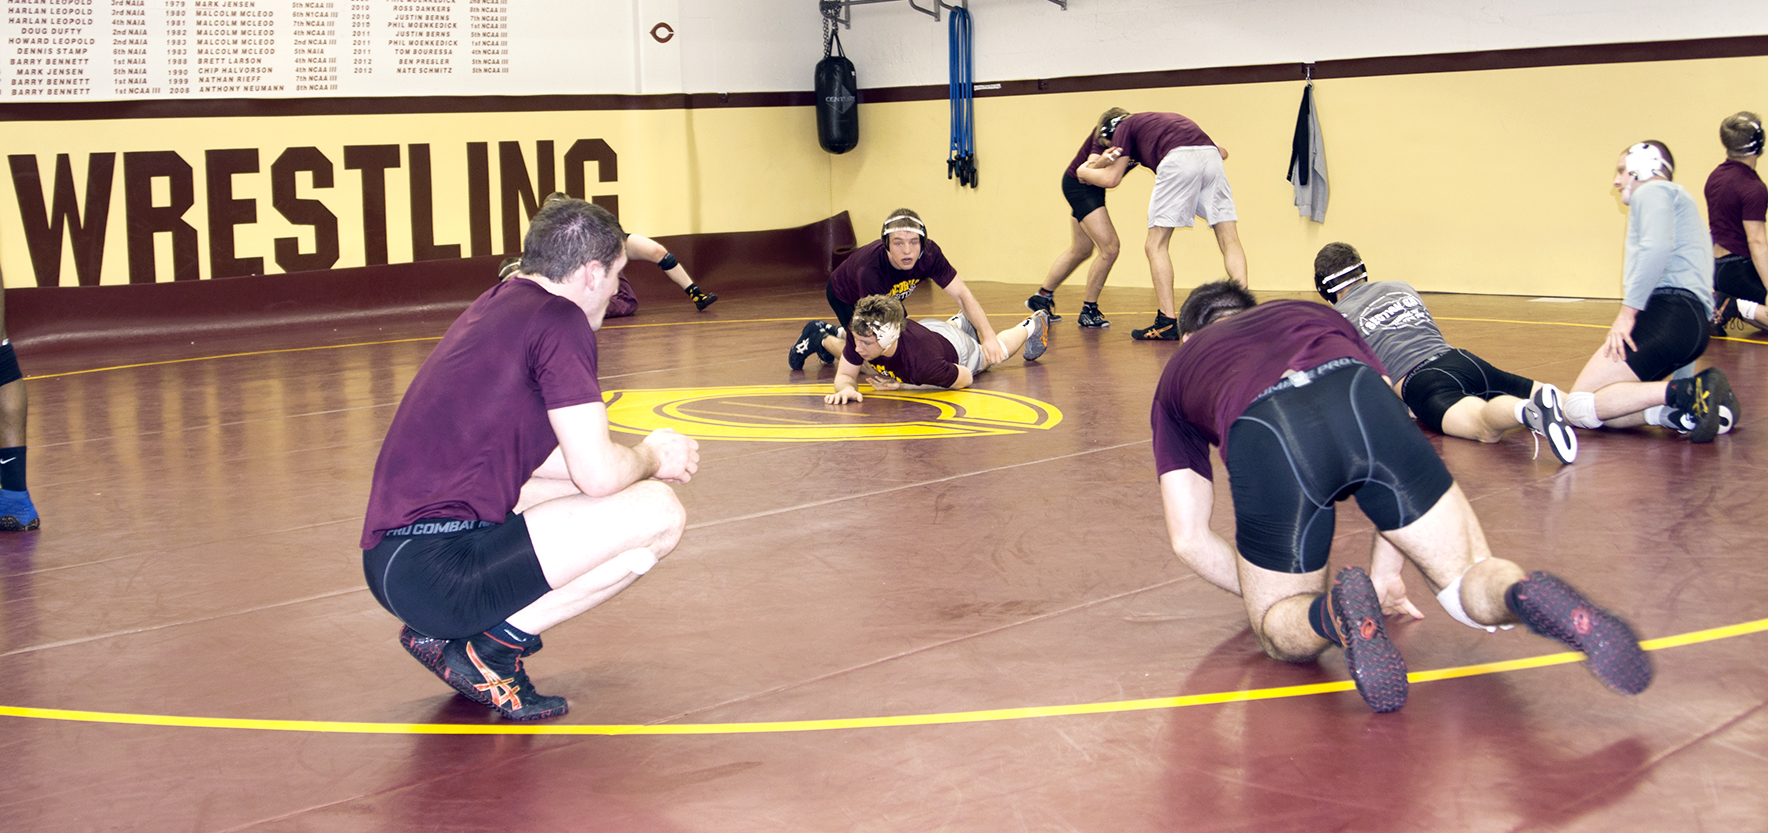 Photo by Ali Everts. The current wrestling facility (pictured) is only big enough to house one full-size wrestling mat. Therefore, the wrestlers have to practice all together in the one room, leading to over-crowding and wrestlers bumping into one another as they spar.